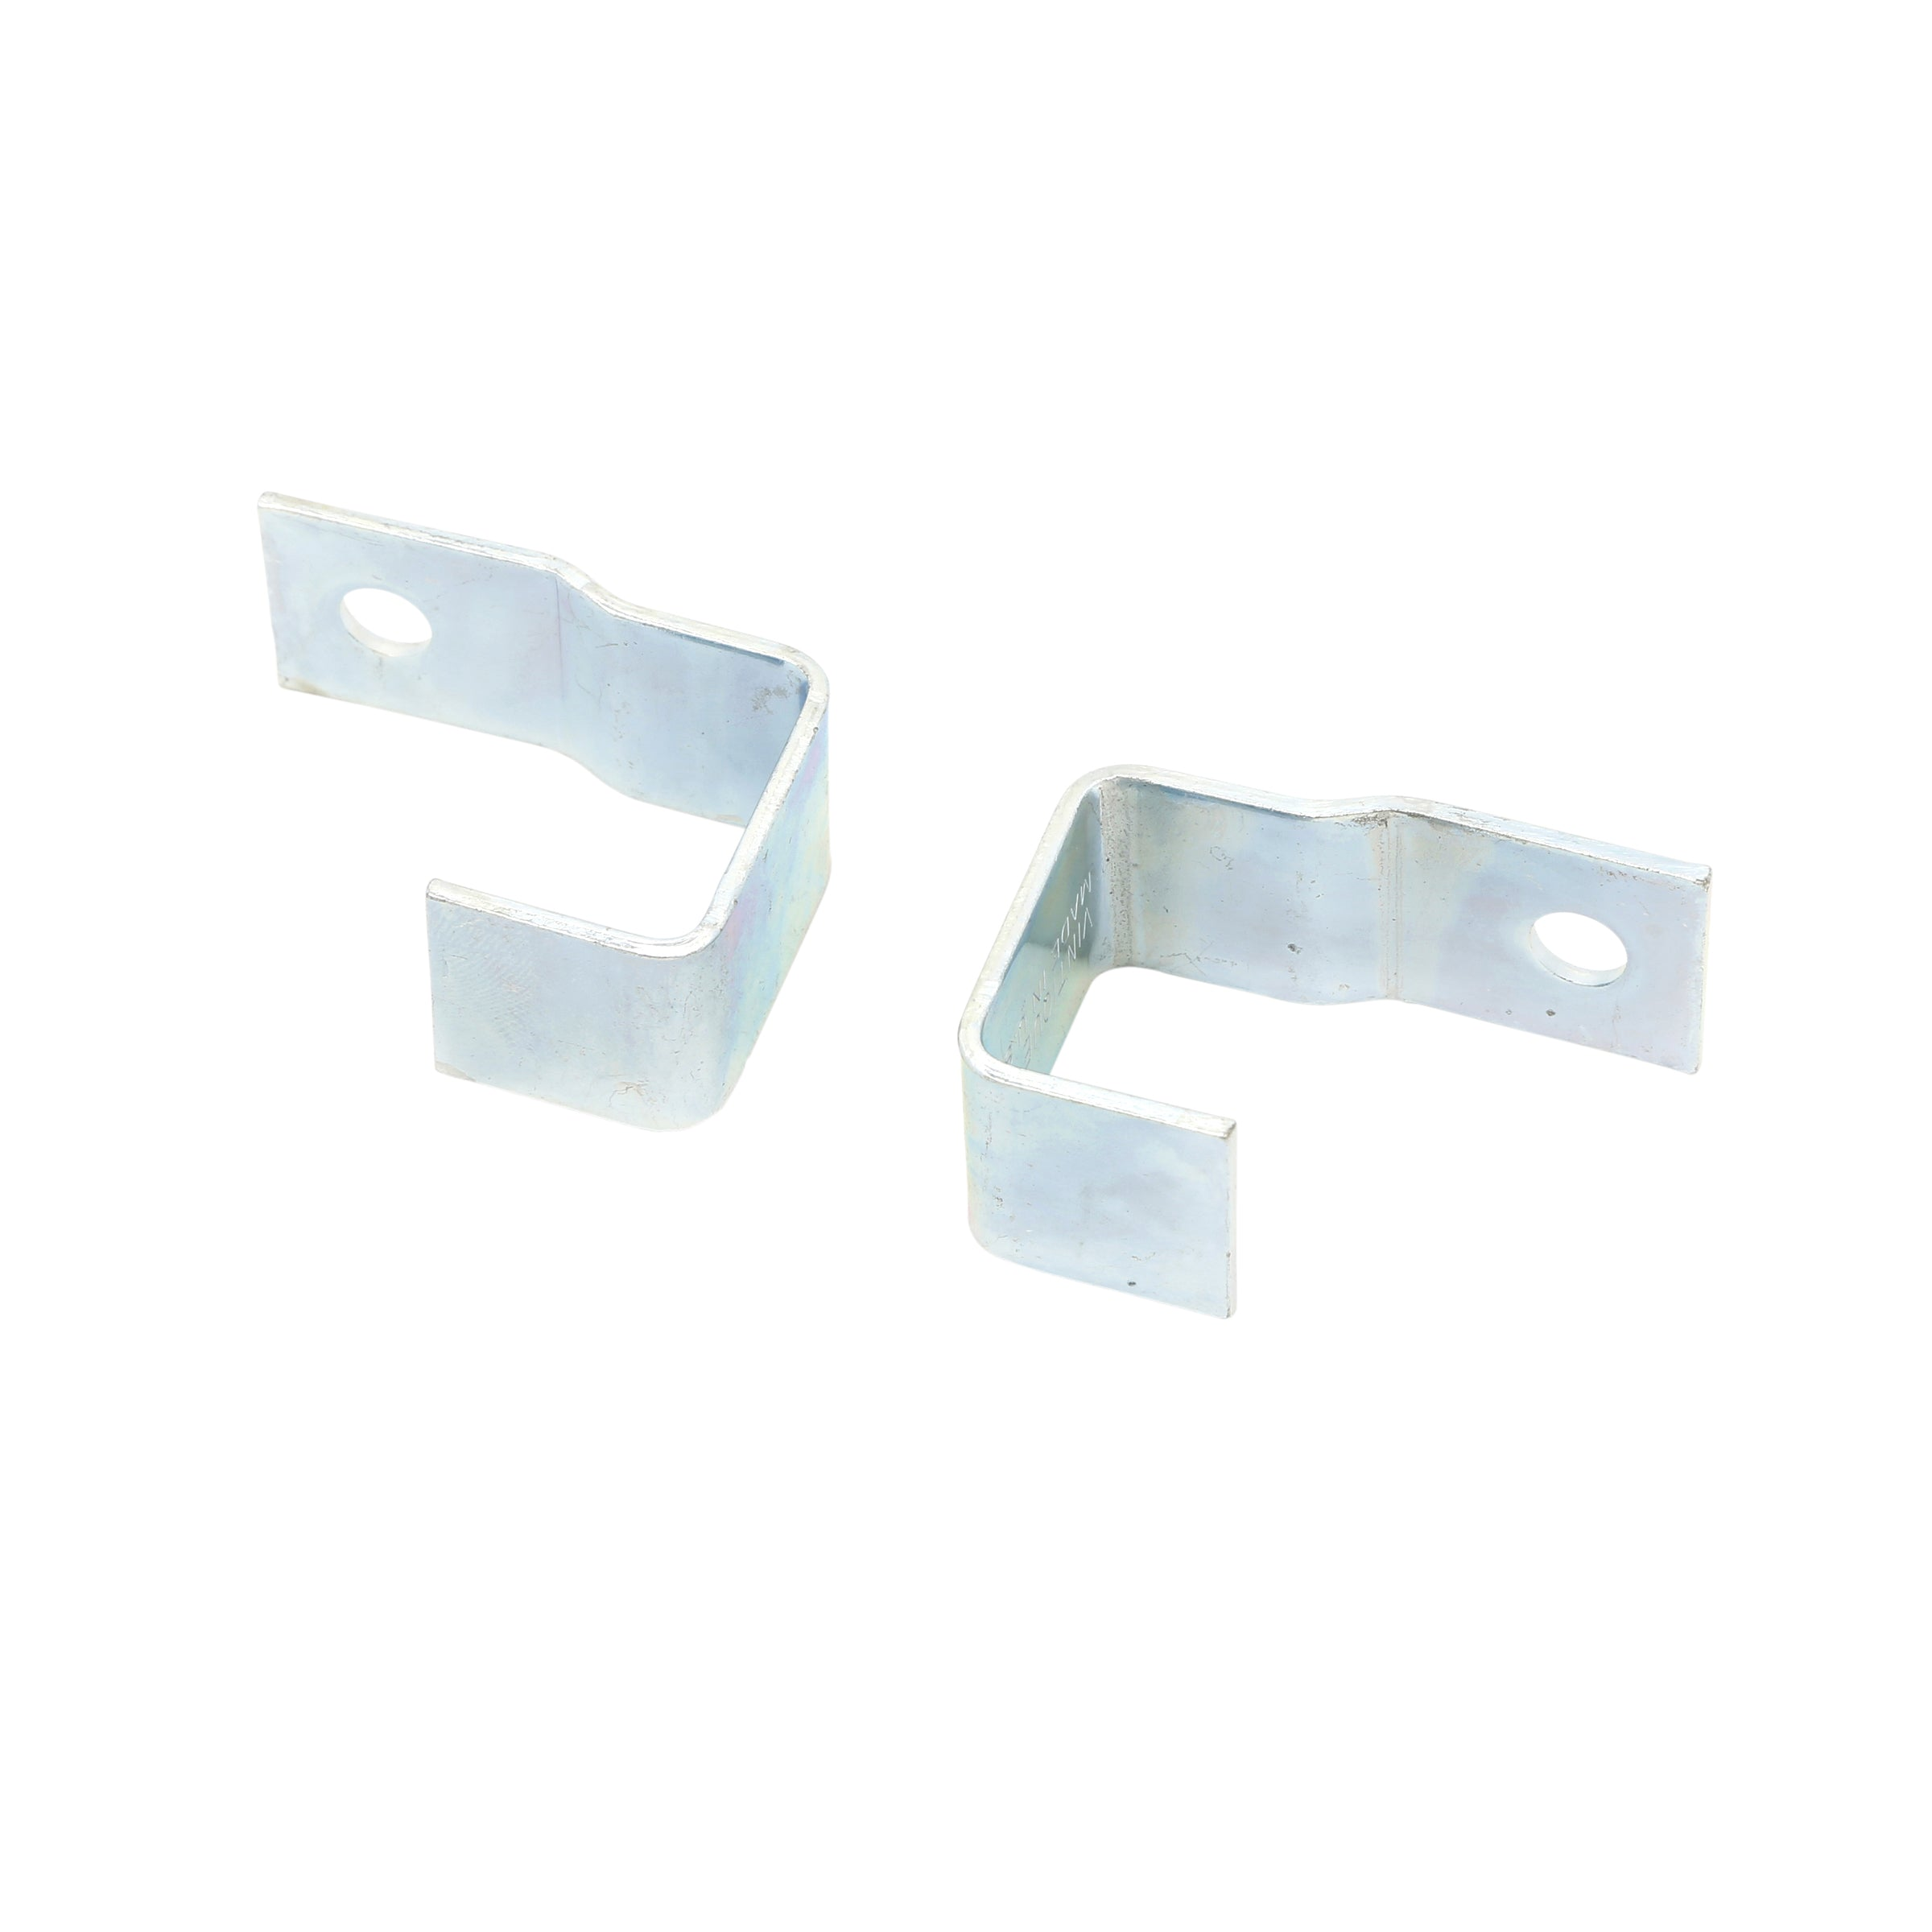 Hand Brake Cable Guide Brackets